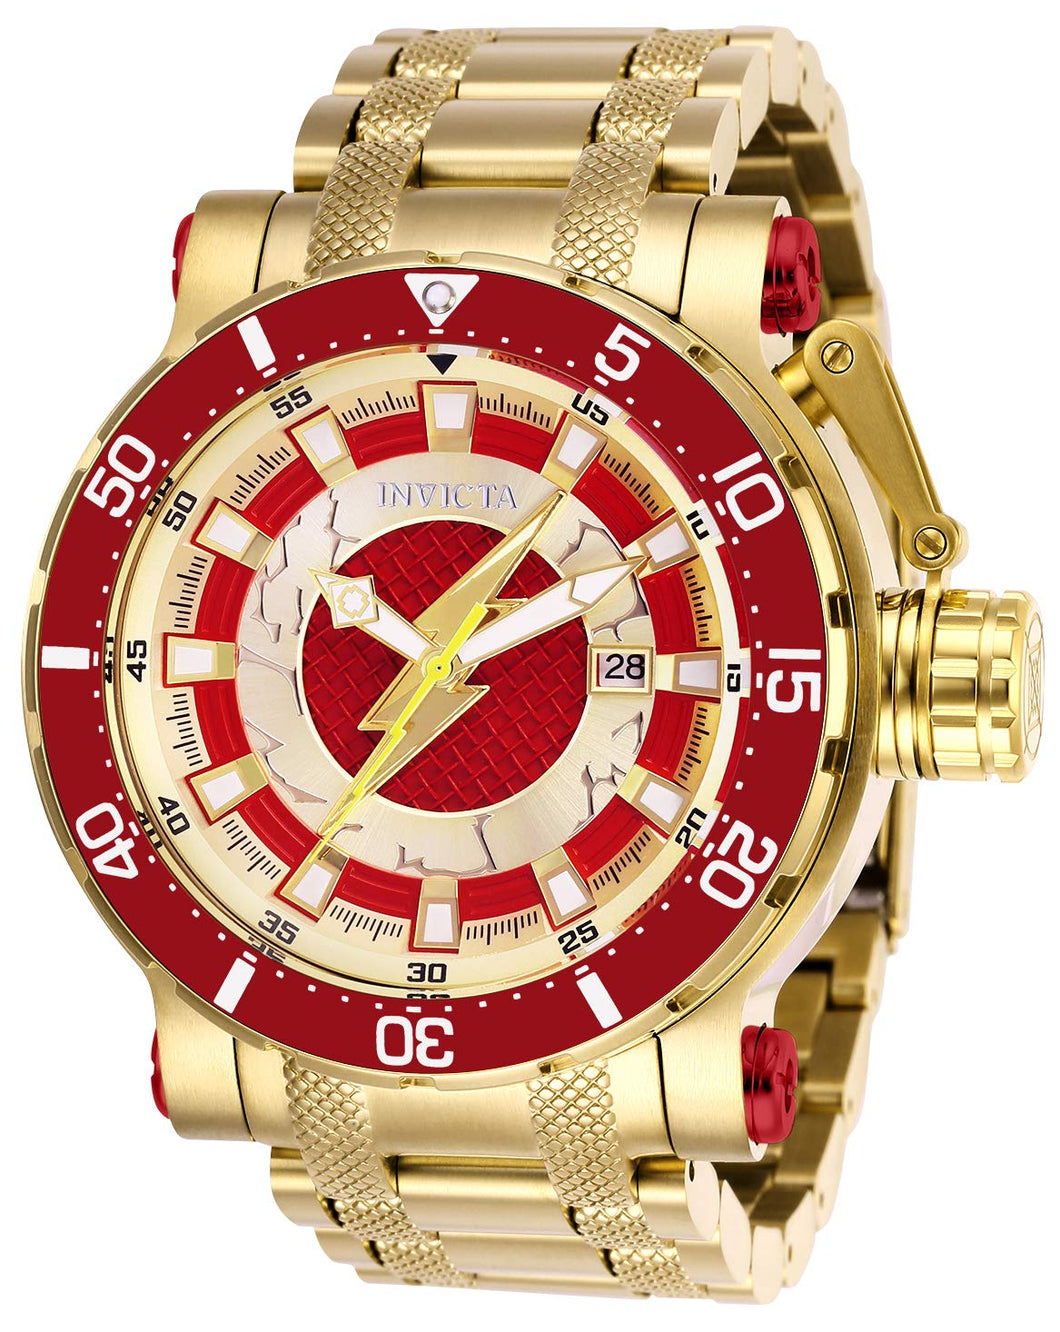 Invicta Automatic Watch (Model: 26827)